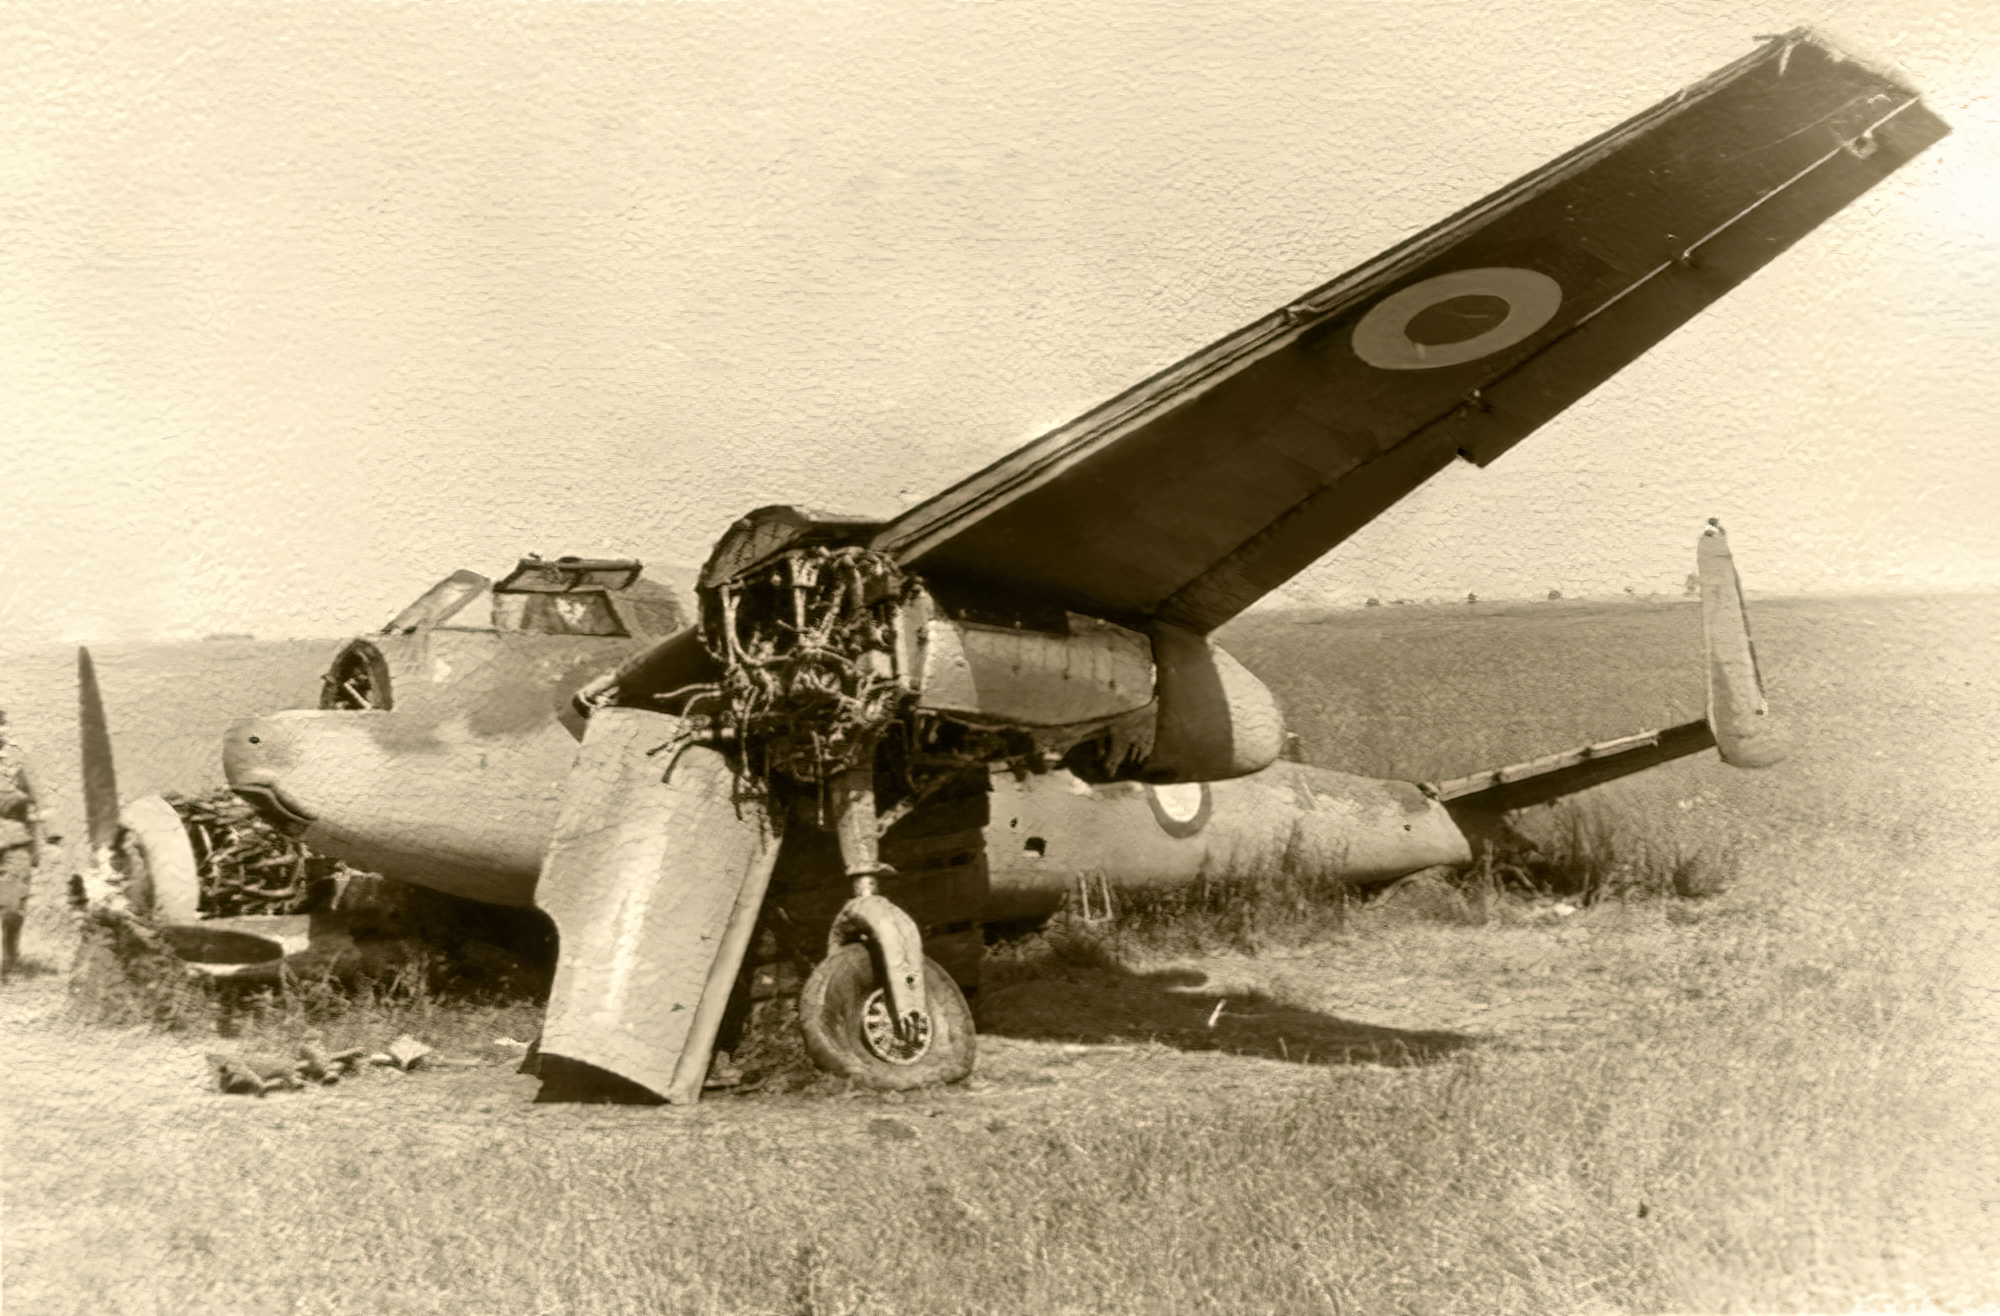 French Airforce Breguet Bre 691 destroyed whilst on the ground battle of France May Jun 1940 ebay 01